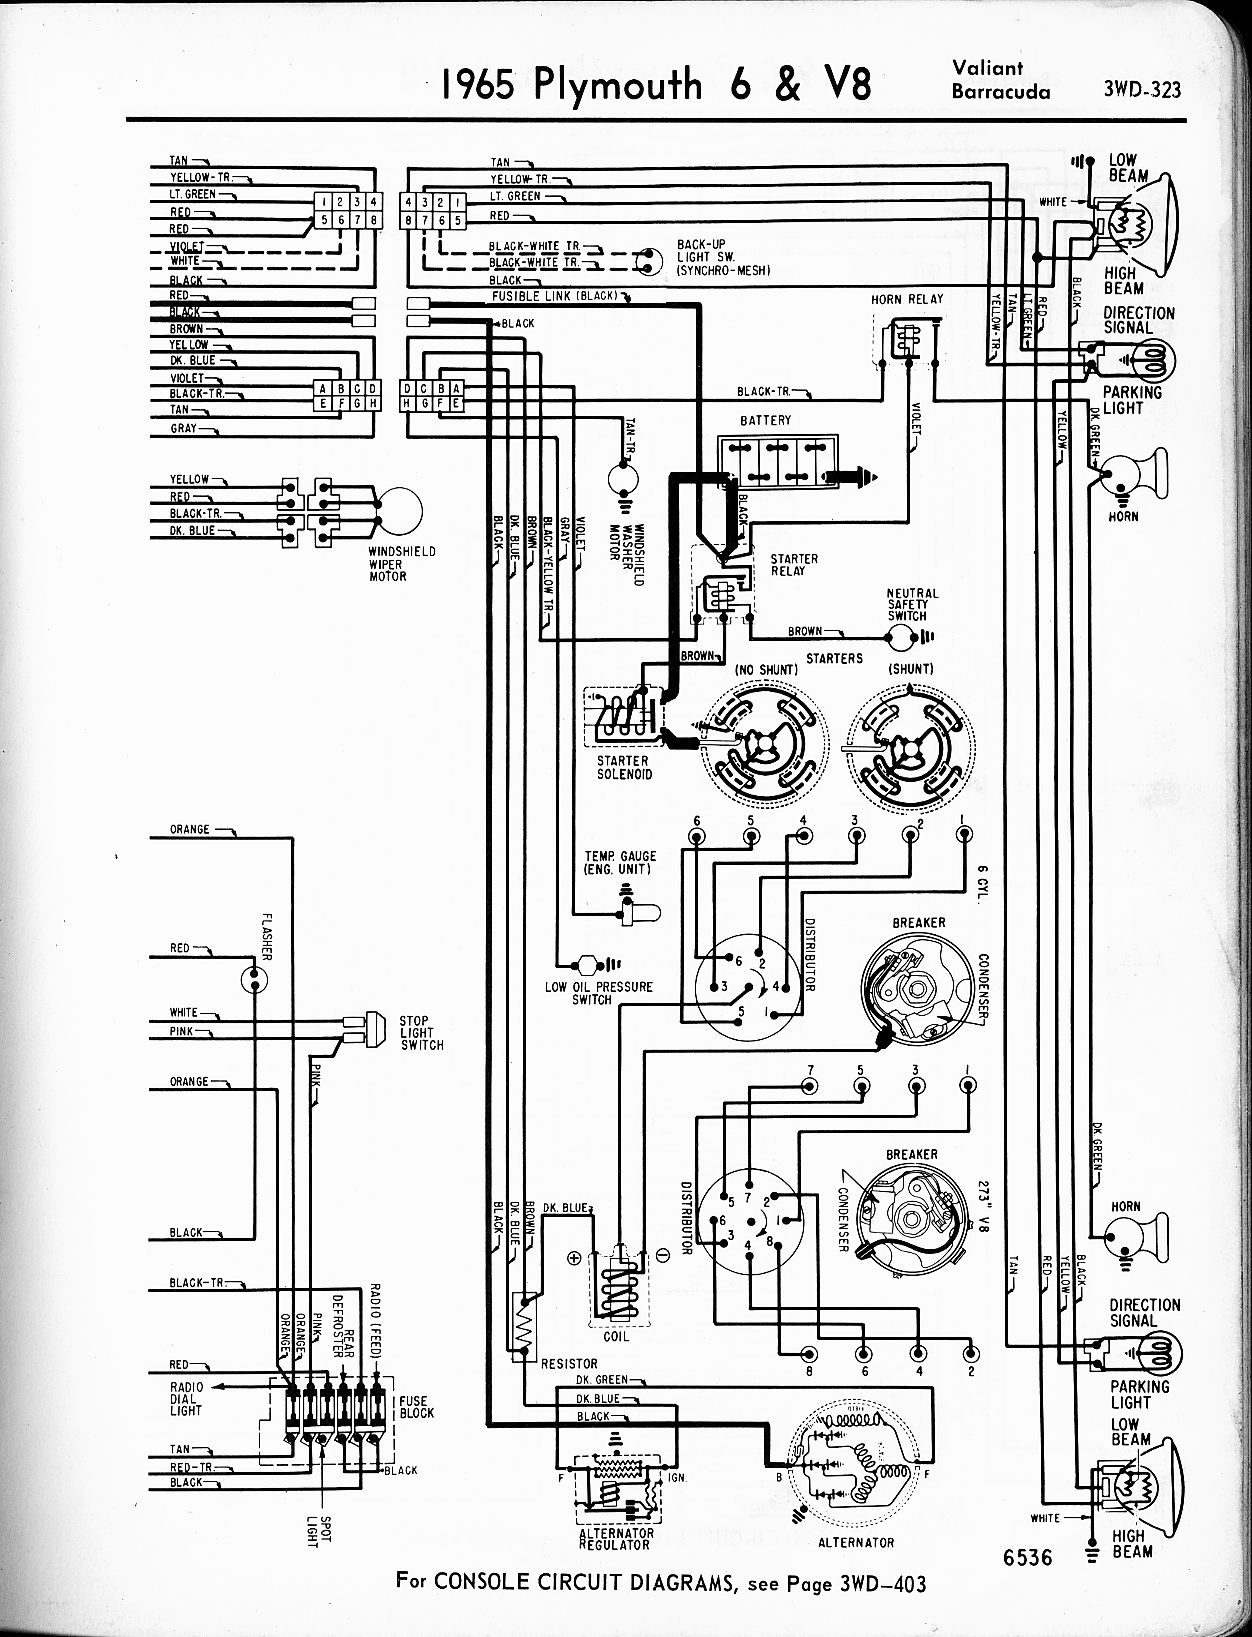 1956 1965 plymouth wiring the old car manual project 1965 plymouth 6 v8 valiant barracuda left page at 1965 olds 442 wiring diagram